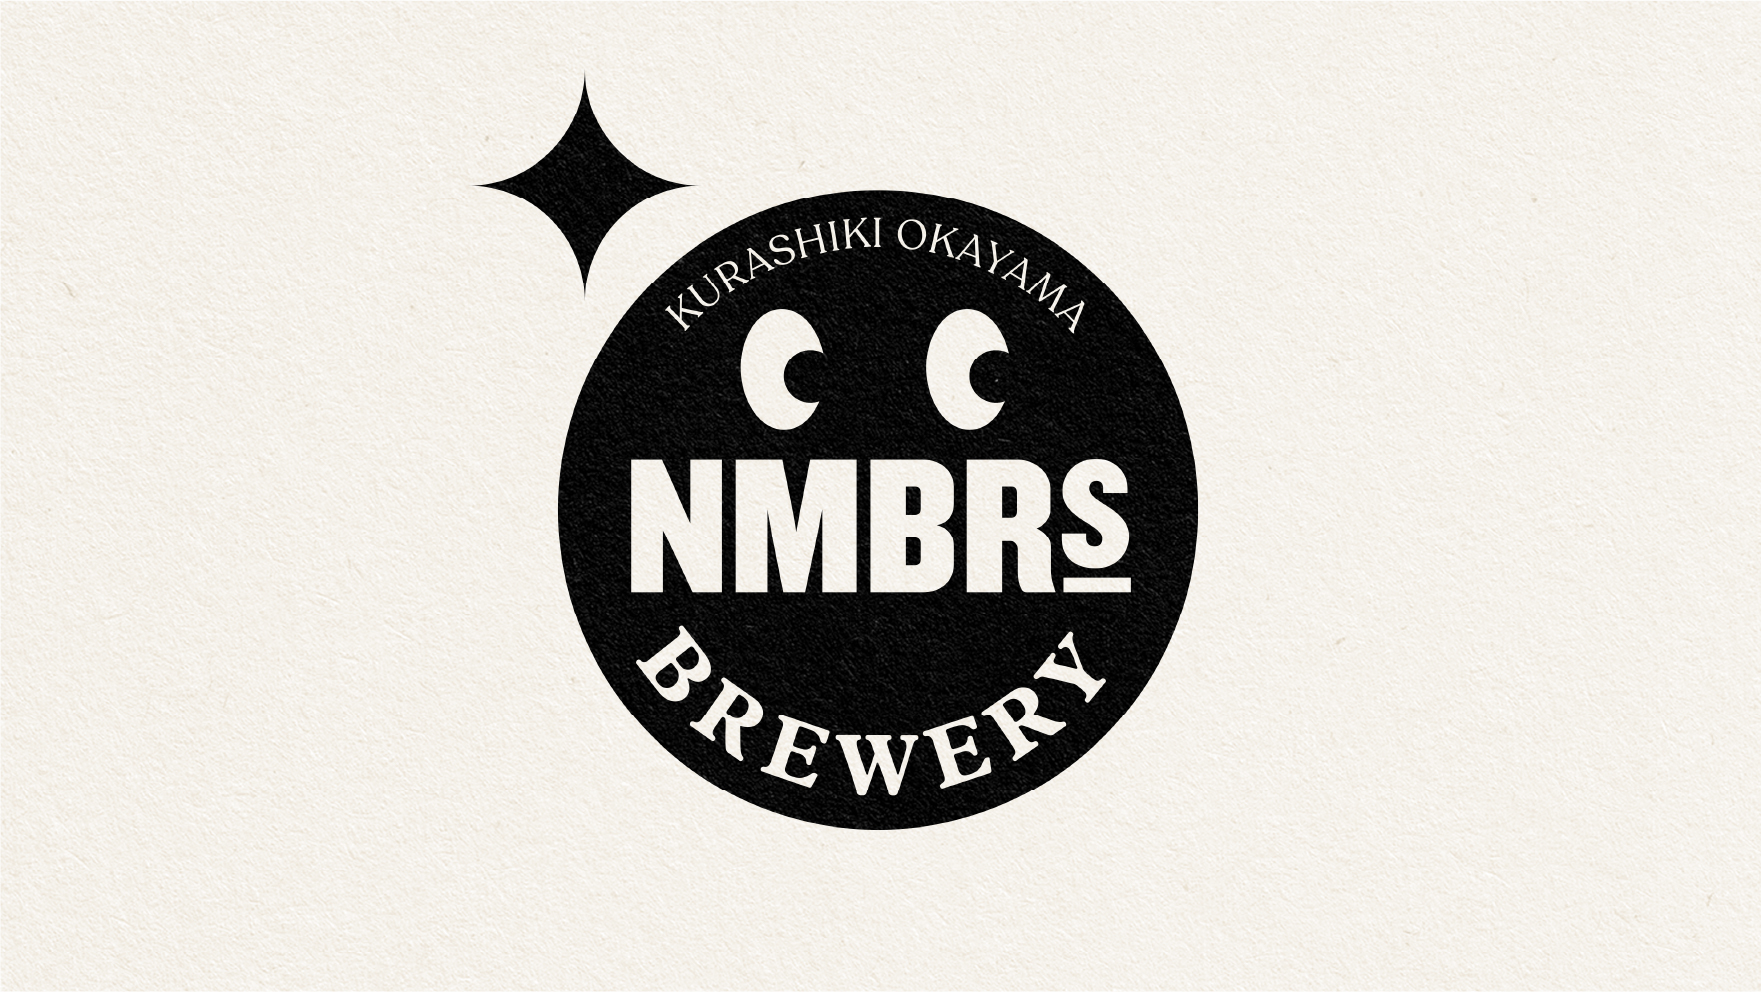 NMBRS Brewery Brand and Packaging Designed by Stam Designs